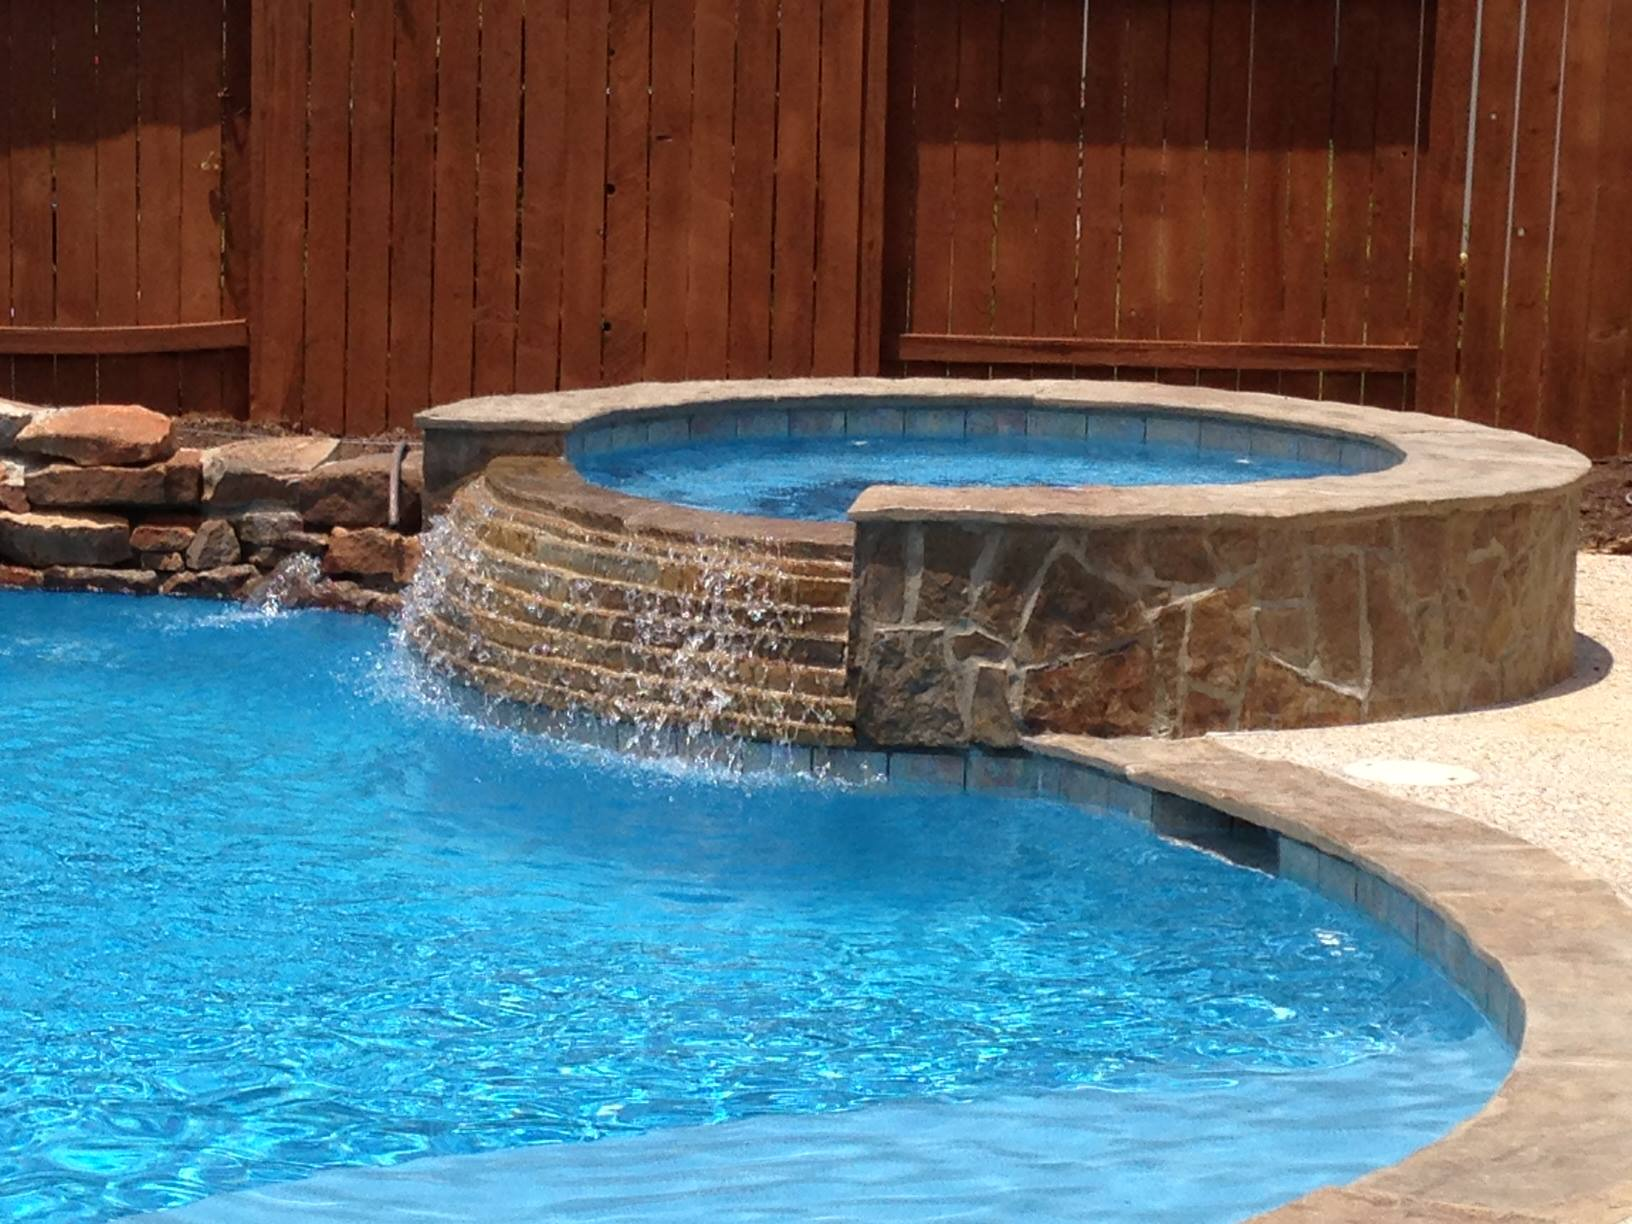 Issac Swimming Pool Patio Covers Katy TX Patio Builder